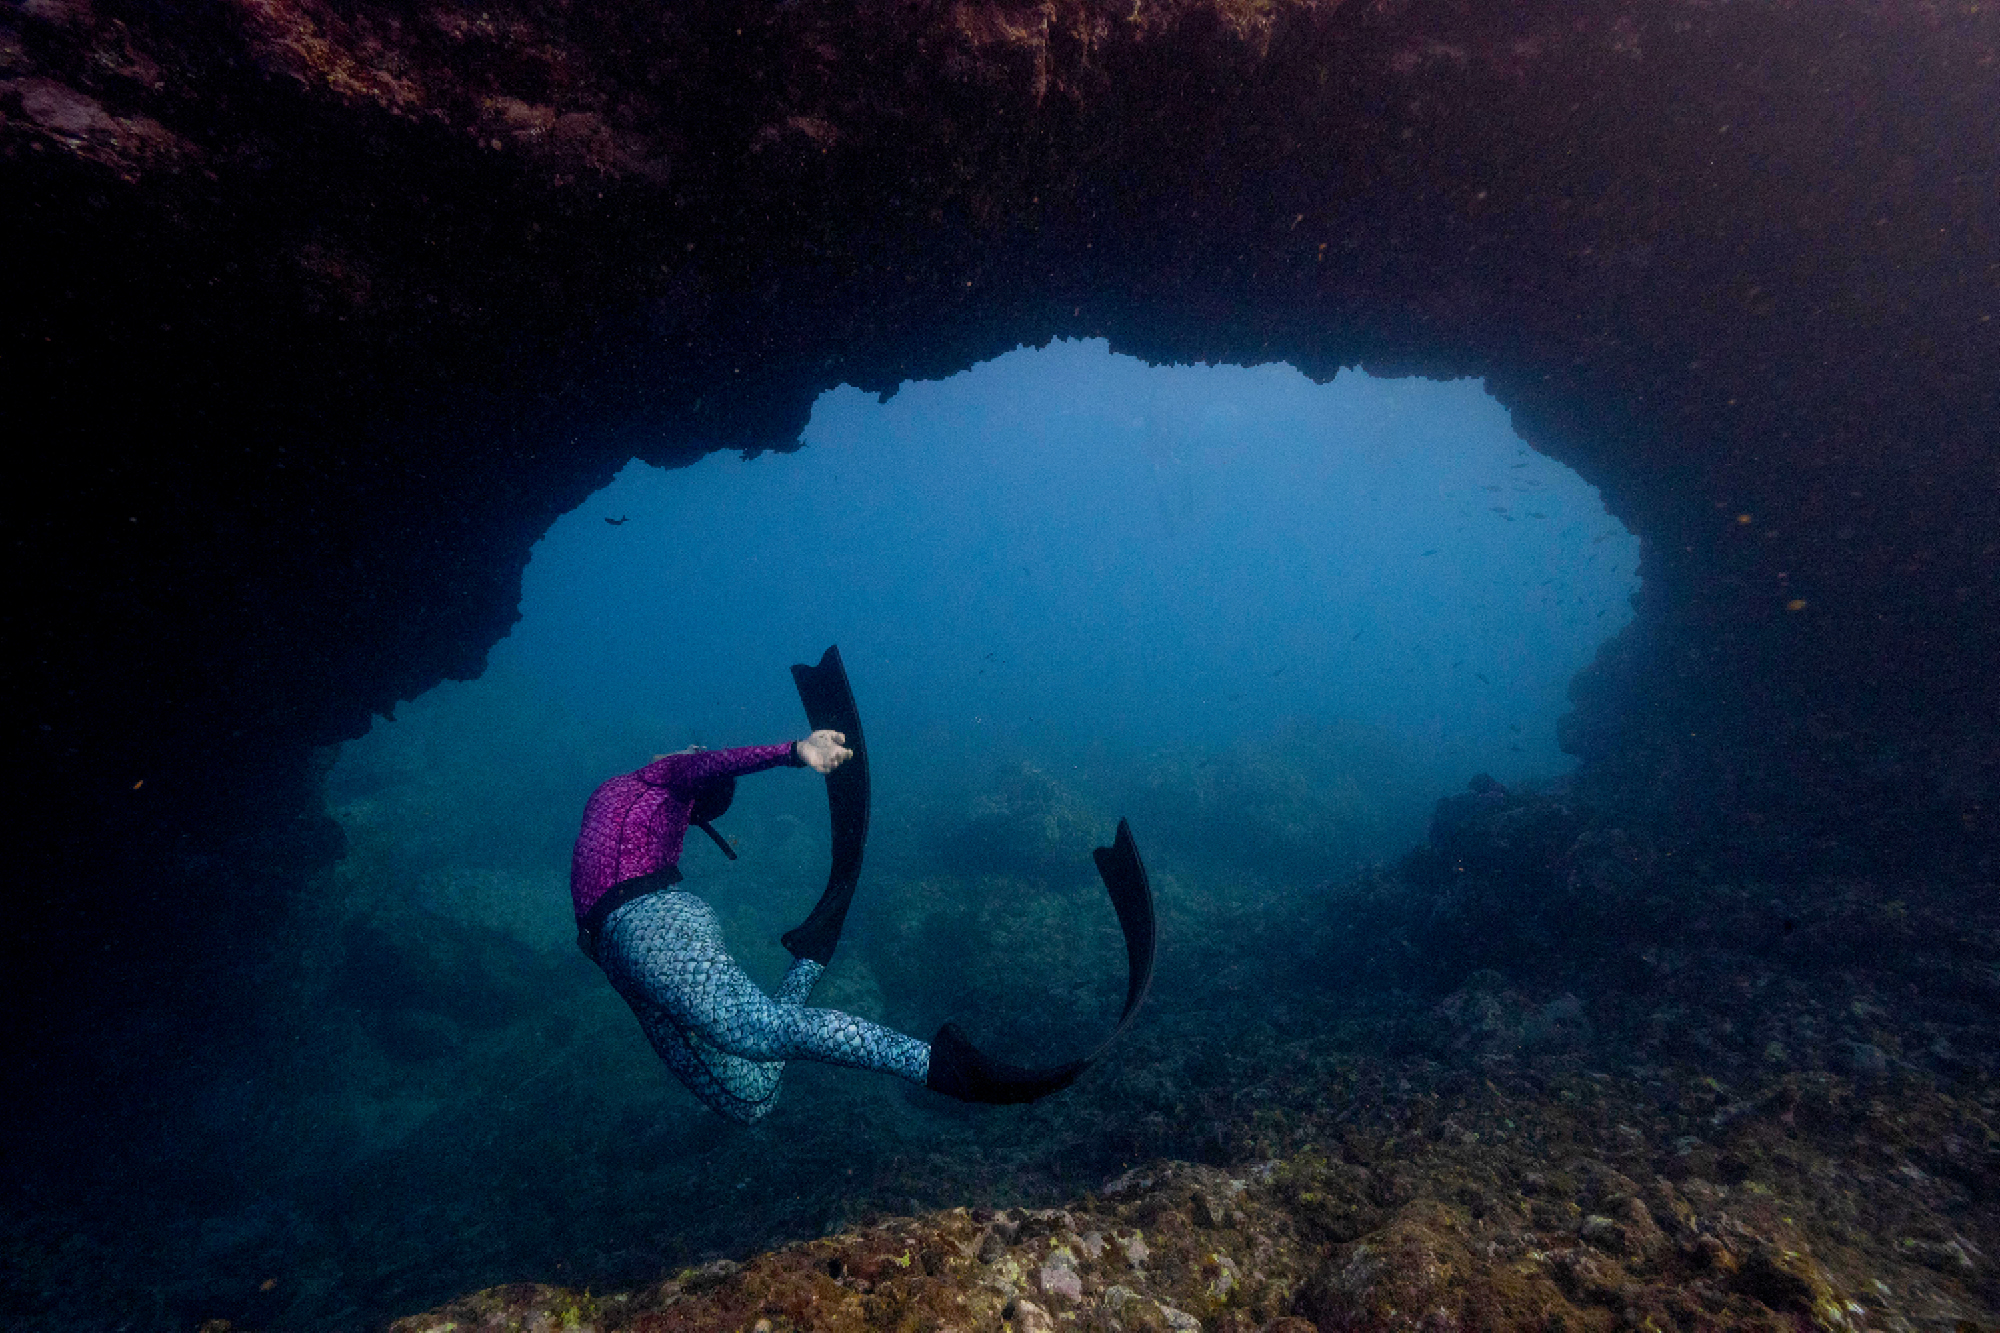 Guests receive free-dive training between marine encounters